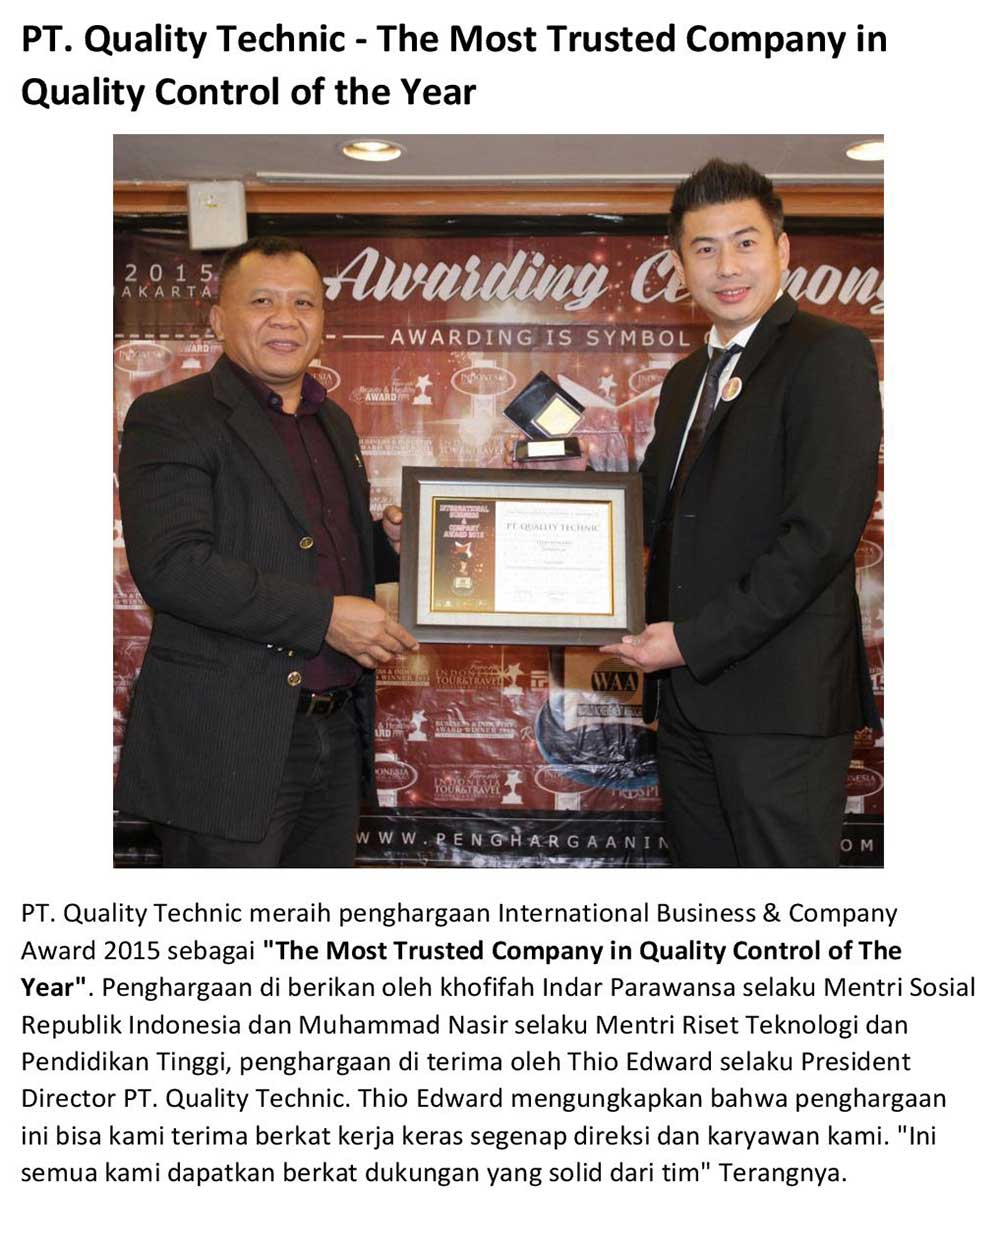 Quality Technic Award - The Most Trusted Company in Quality Control of The Year